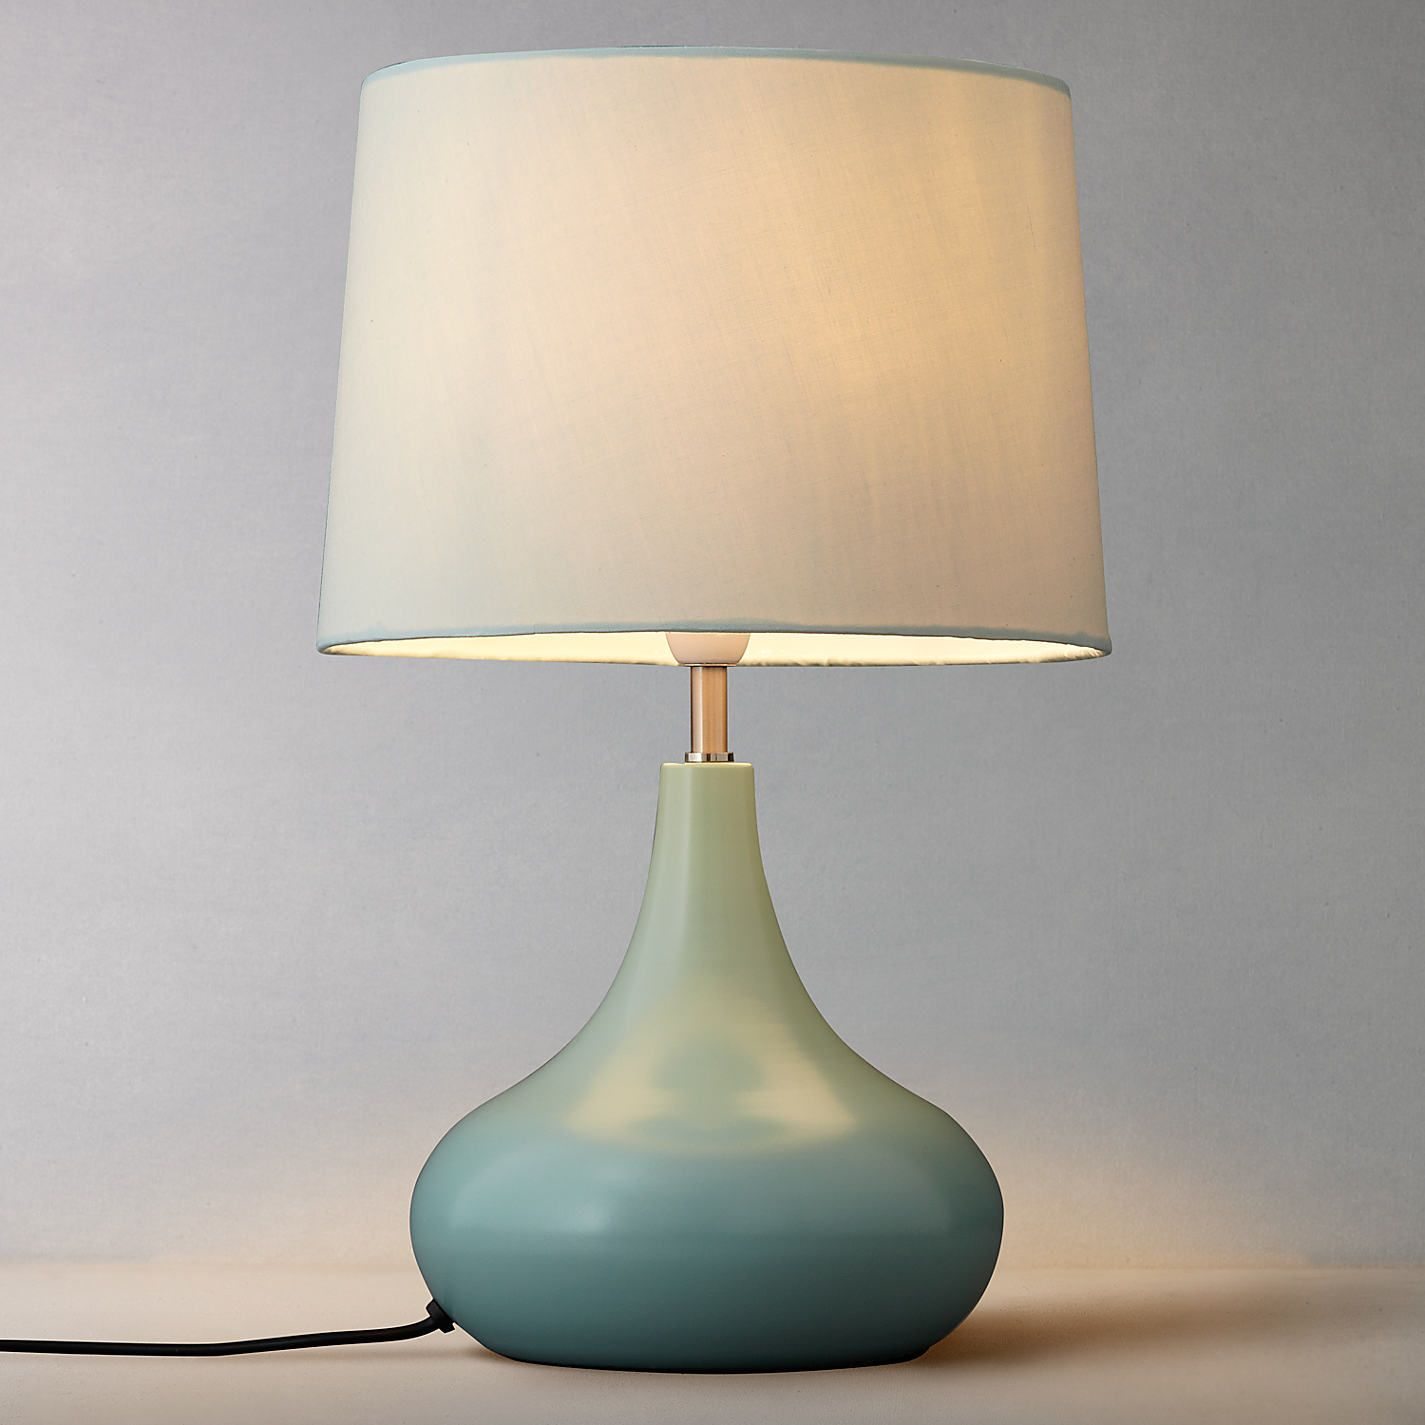 Laura touch lamp touch lamp john lewis and ranges buy john lewis laura touch lamp from our table lamps range at john lewis free geotapseo Image collections